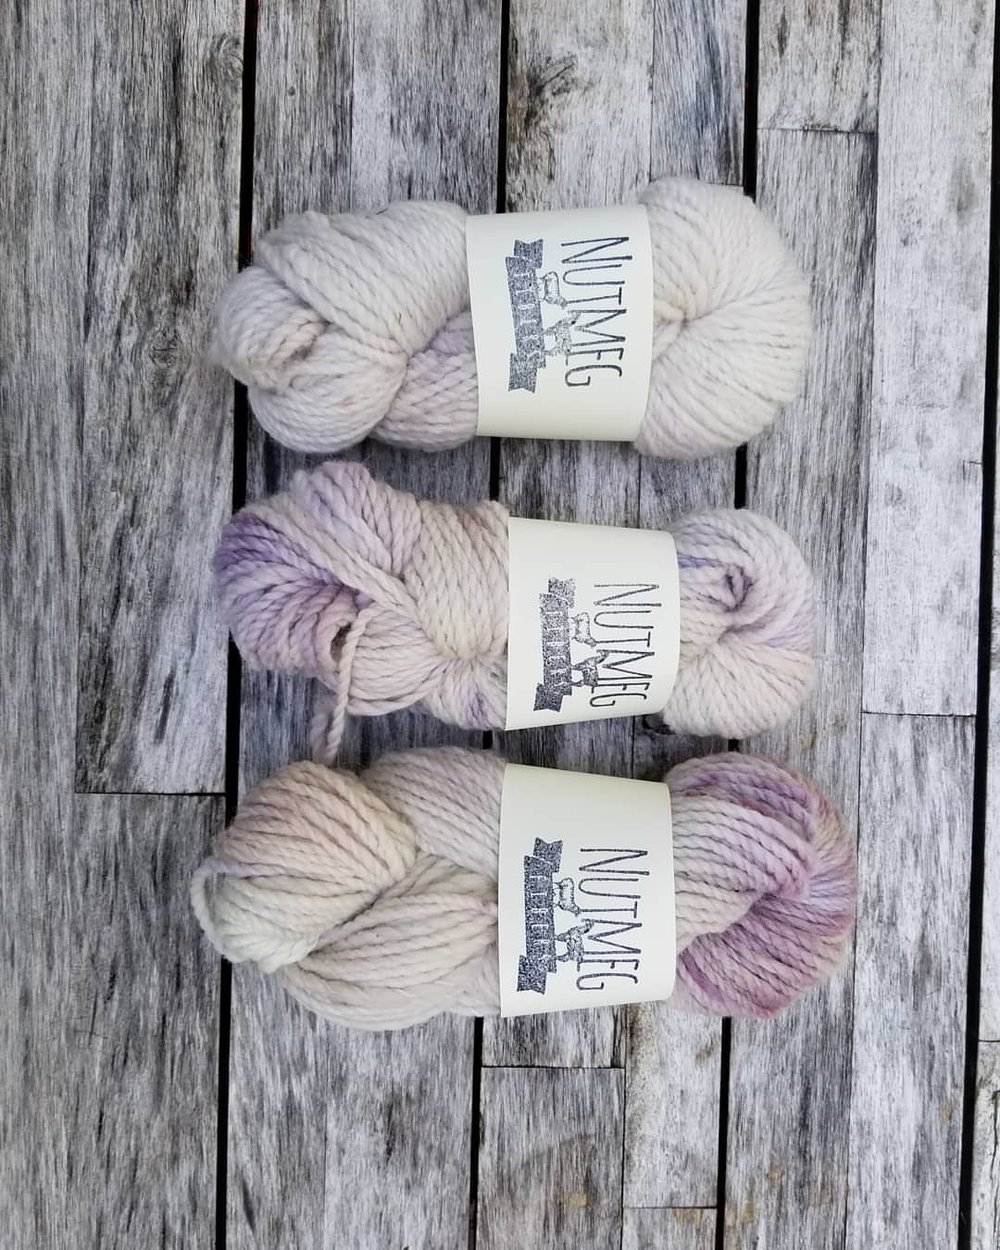 Thinking of projects while I'm away on this trip. There are still a few left of this special colorway, Bleeding Heart, shown here in our Cabin Base. What ya gonna turn into, yarn? #nfsummer2018 #cabin #limitededition #goodthings